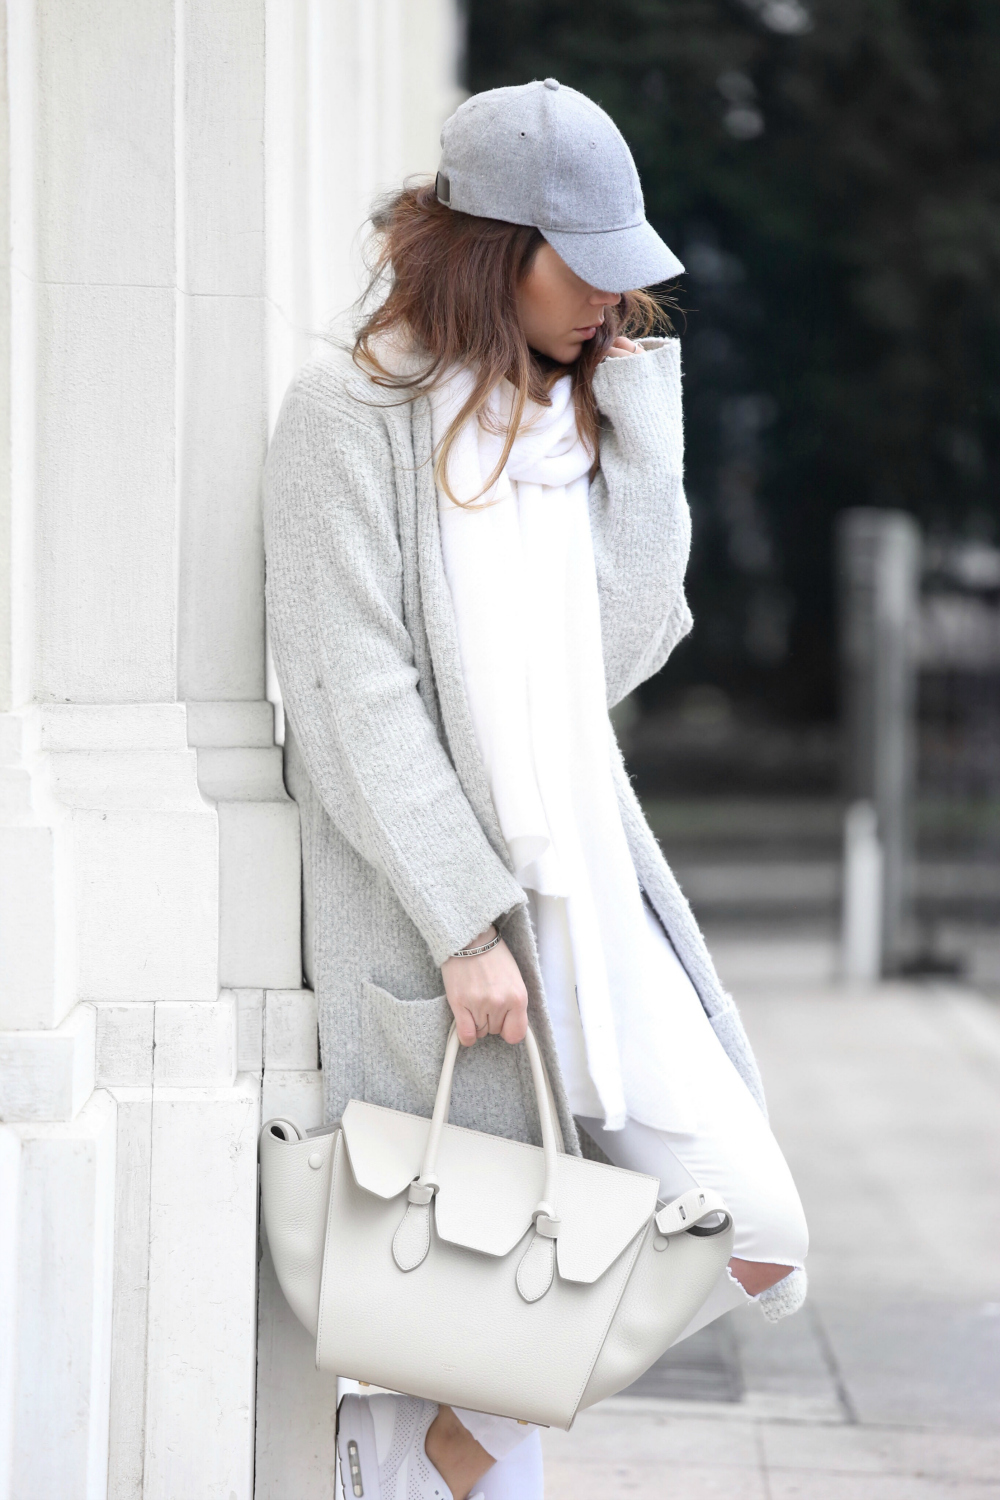 Dare to wear white this winter and steal Nicoletta Reggio's icy cool style! Pairing distressed white jeans with a marl grey cardigan and cap, this look encapsulates the best aspects of an edgy style. Sweater: Primark, Trousers/Scarf: Zara, Shoes: Nike, Bag: Hat: H&M.